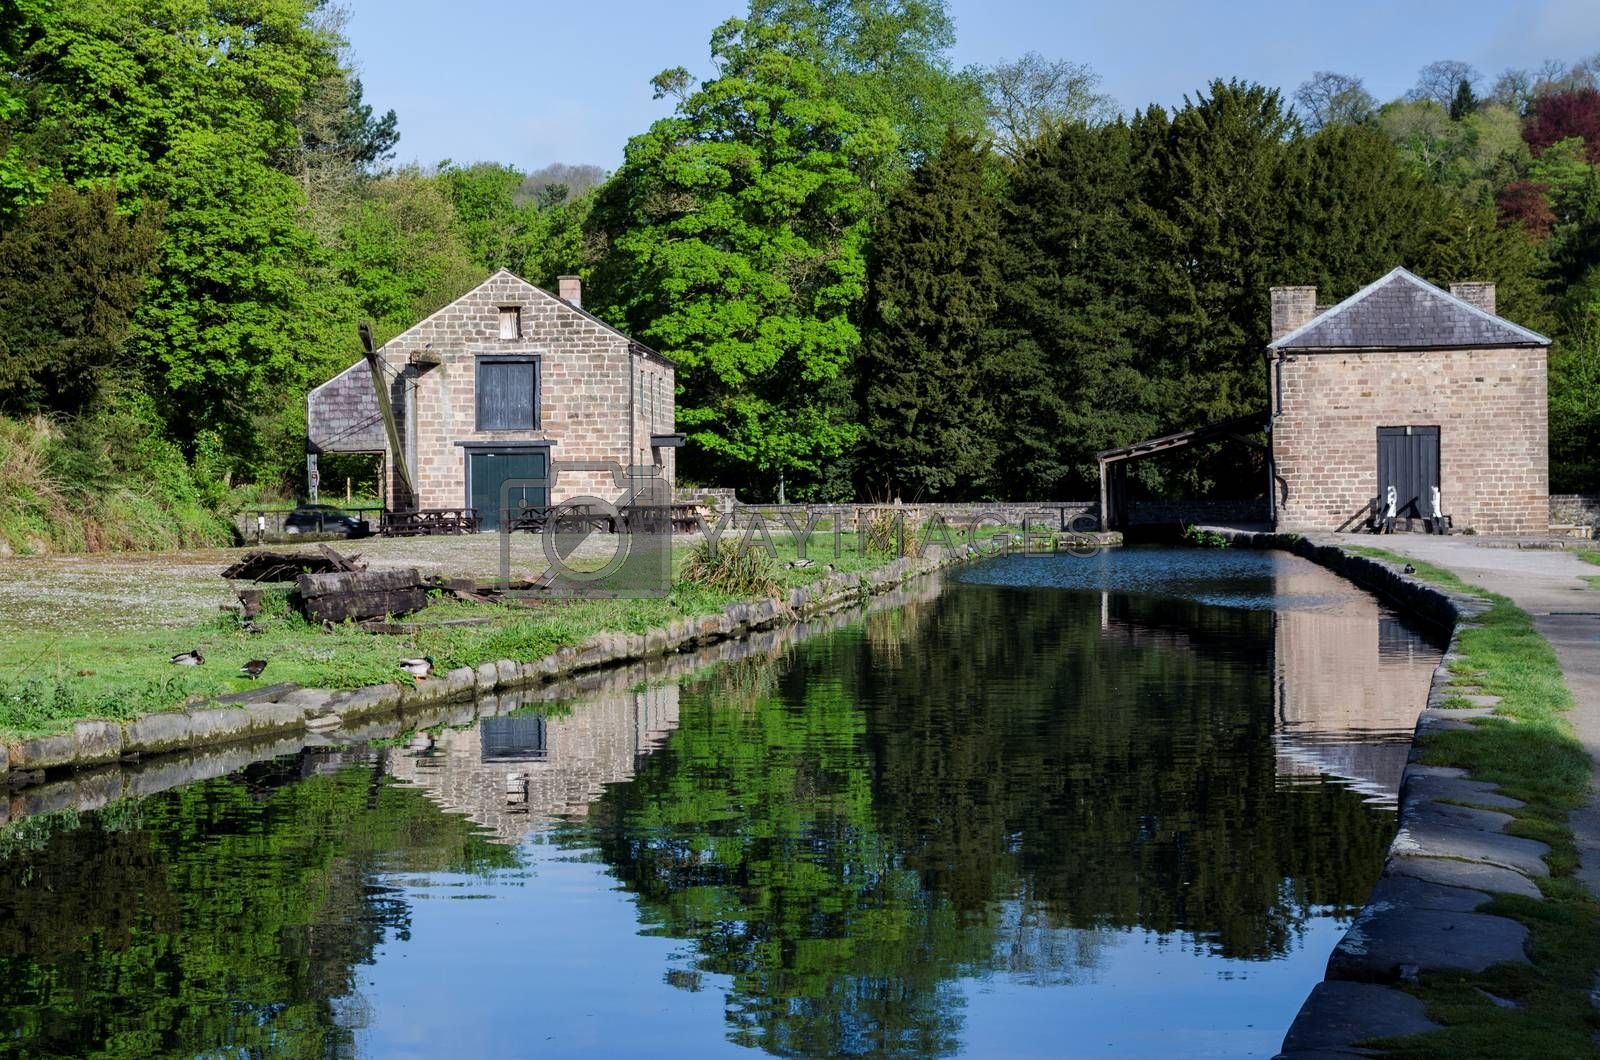 Old buildings at the side of Cromford Canal in the Peak District, Derbyshire